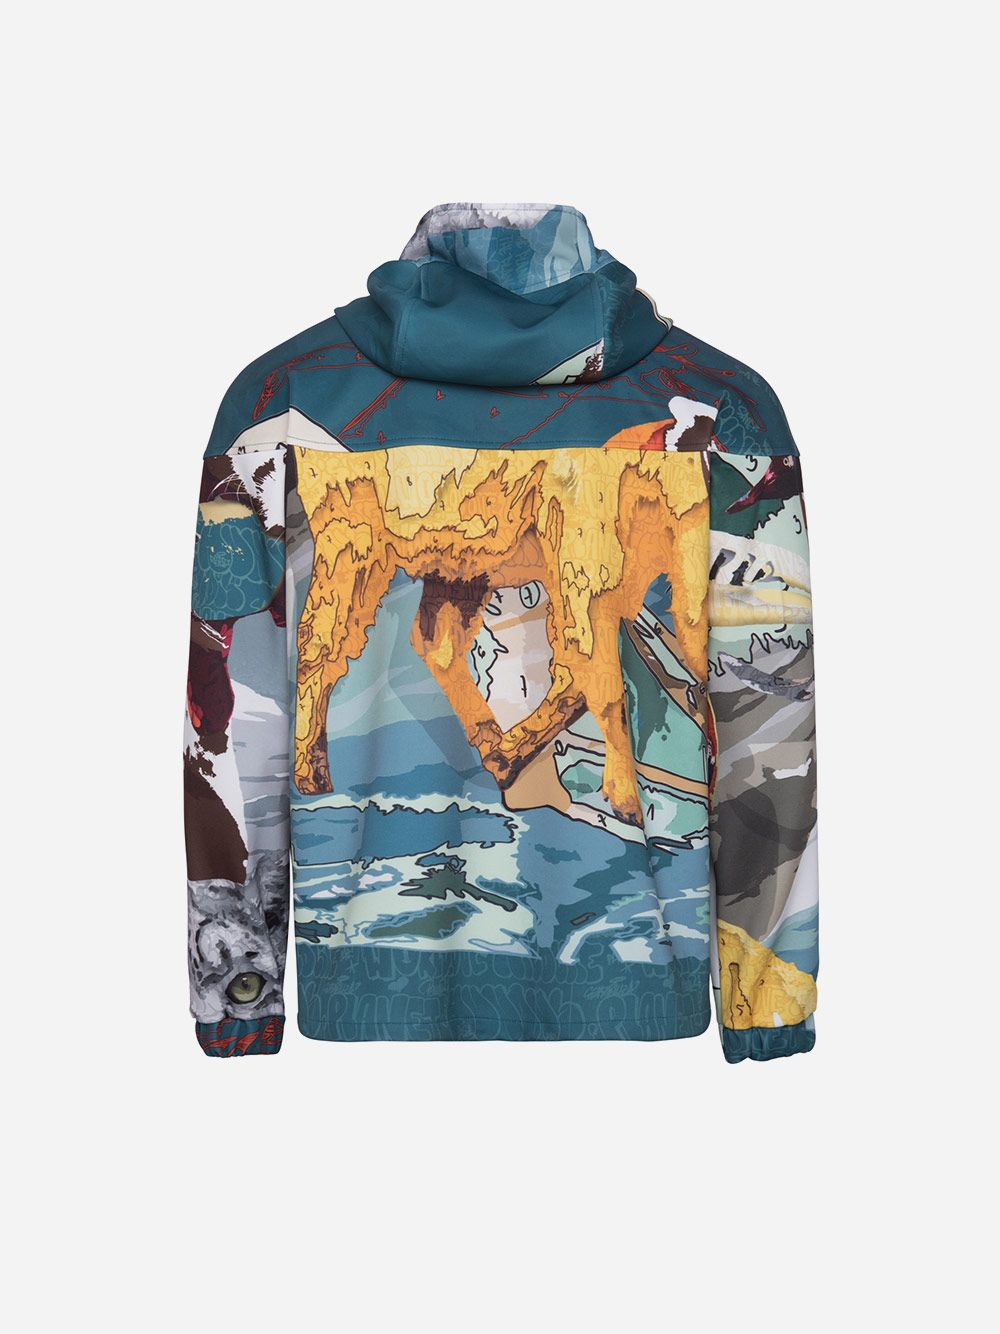 Sweatshirt Expedition Estampada | Duarte